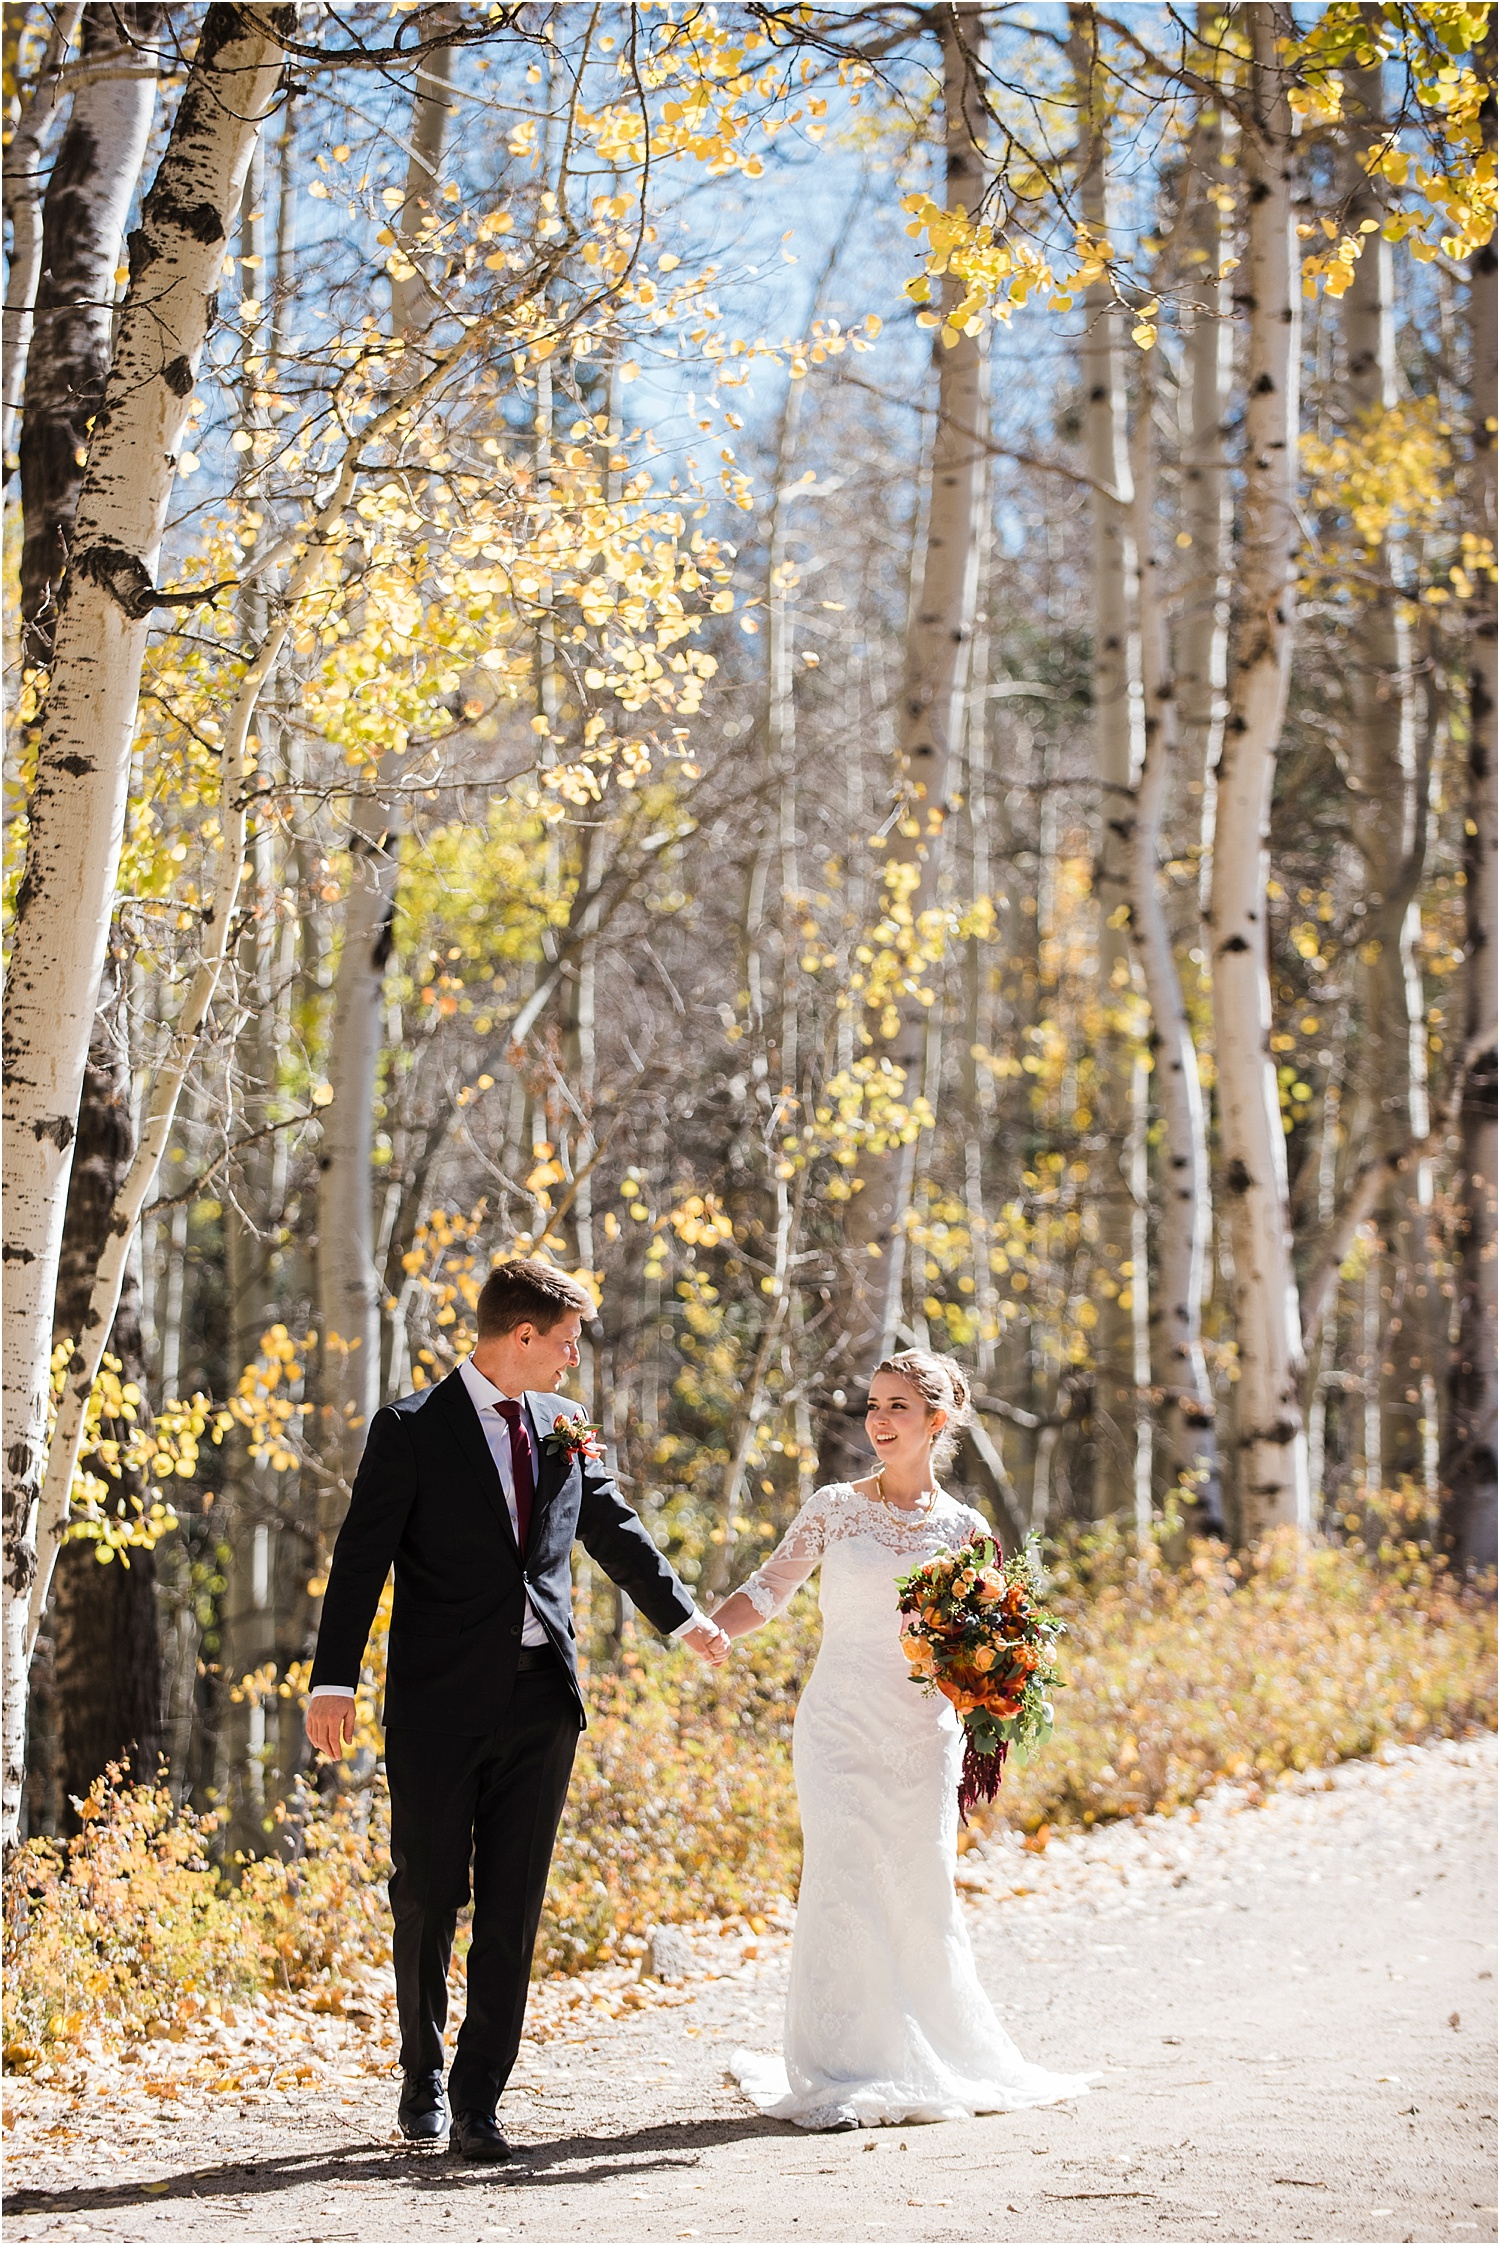 Buena_Vista_Destination_Wedding_Photographer_Apollo_Fields_Colorado_0006.jpg